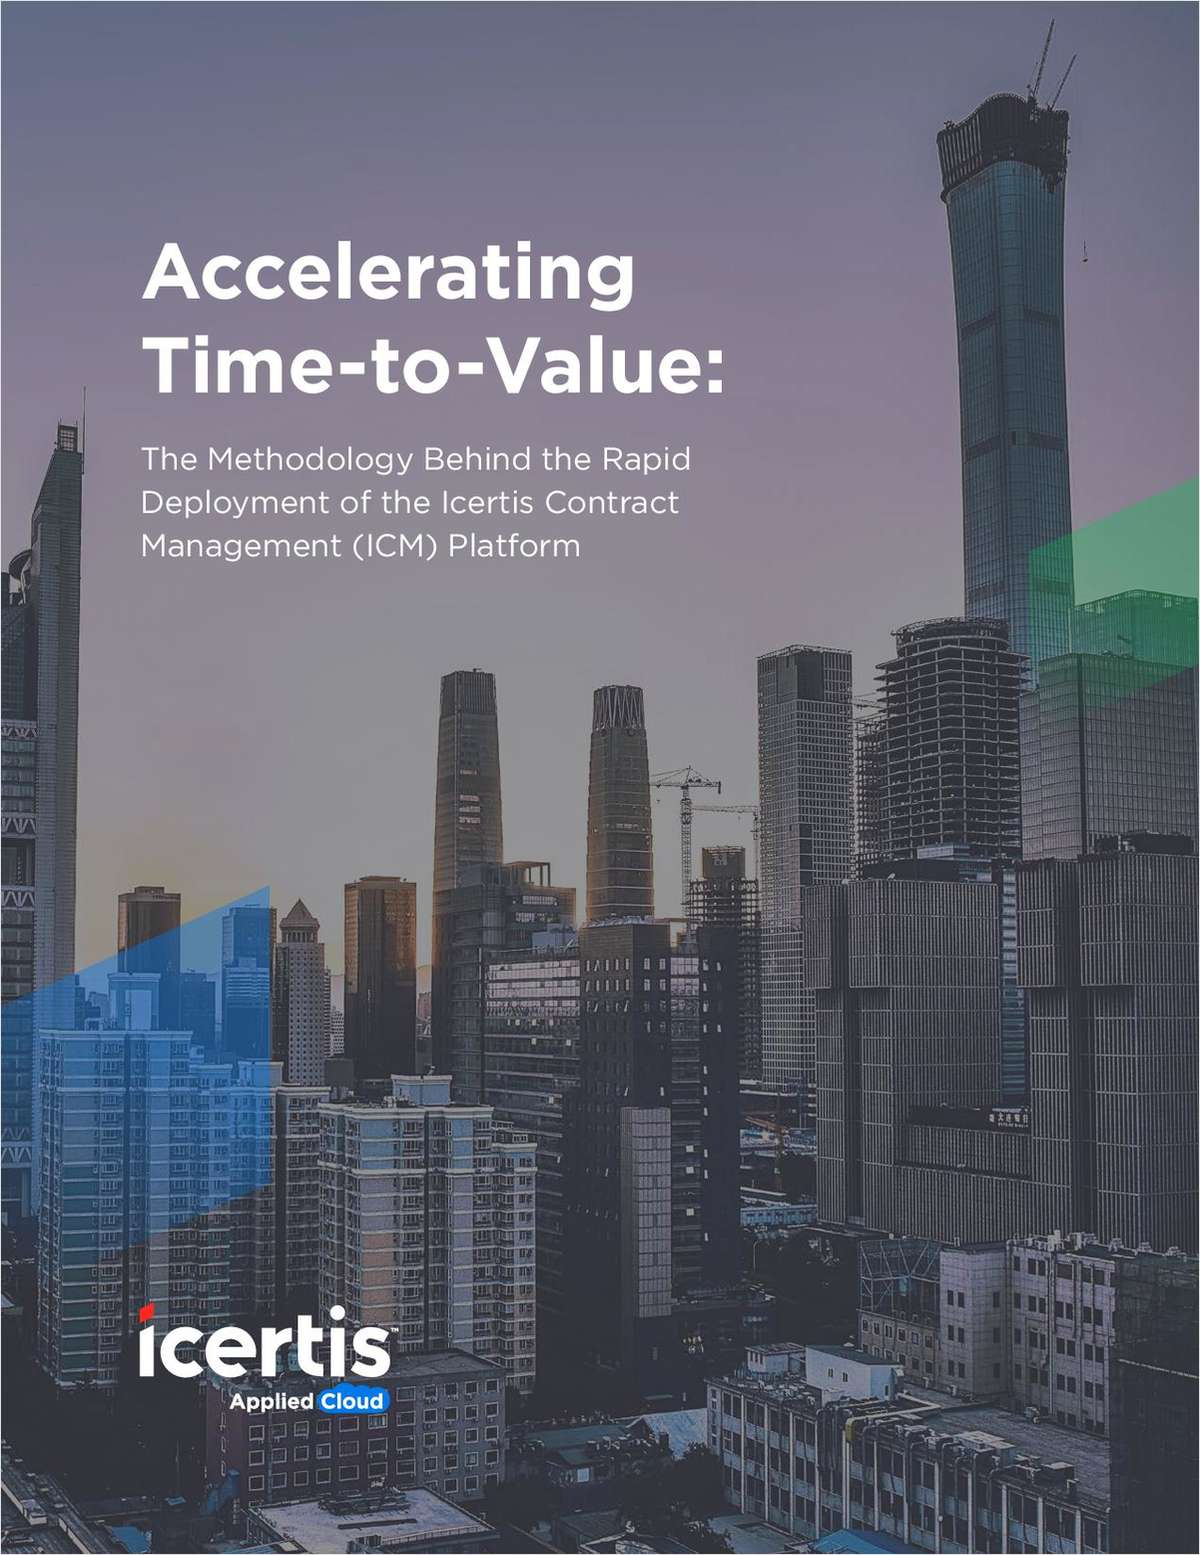 The Methodology Behind the Rapid Deployment of A Contract Management Platform